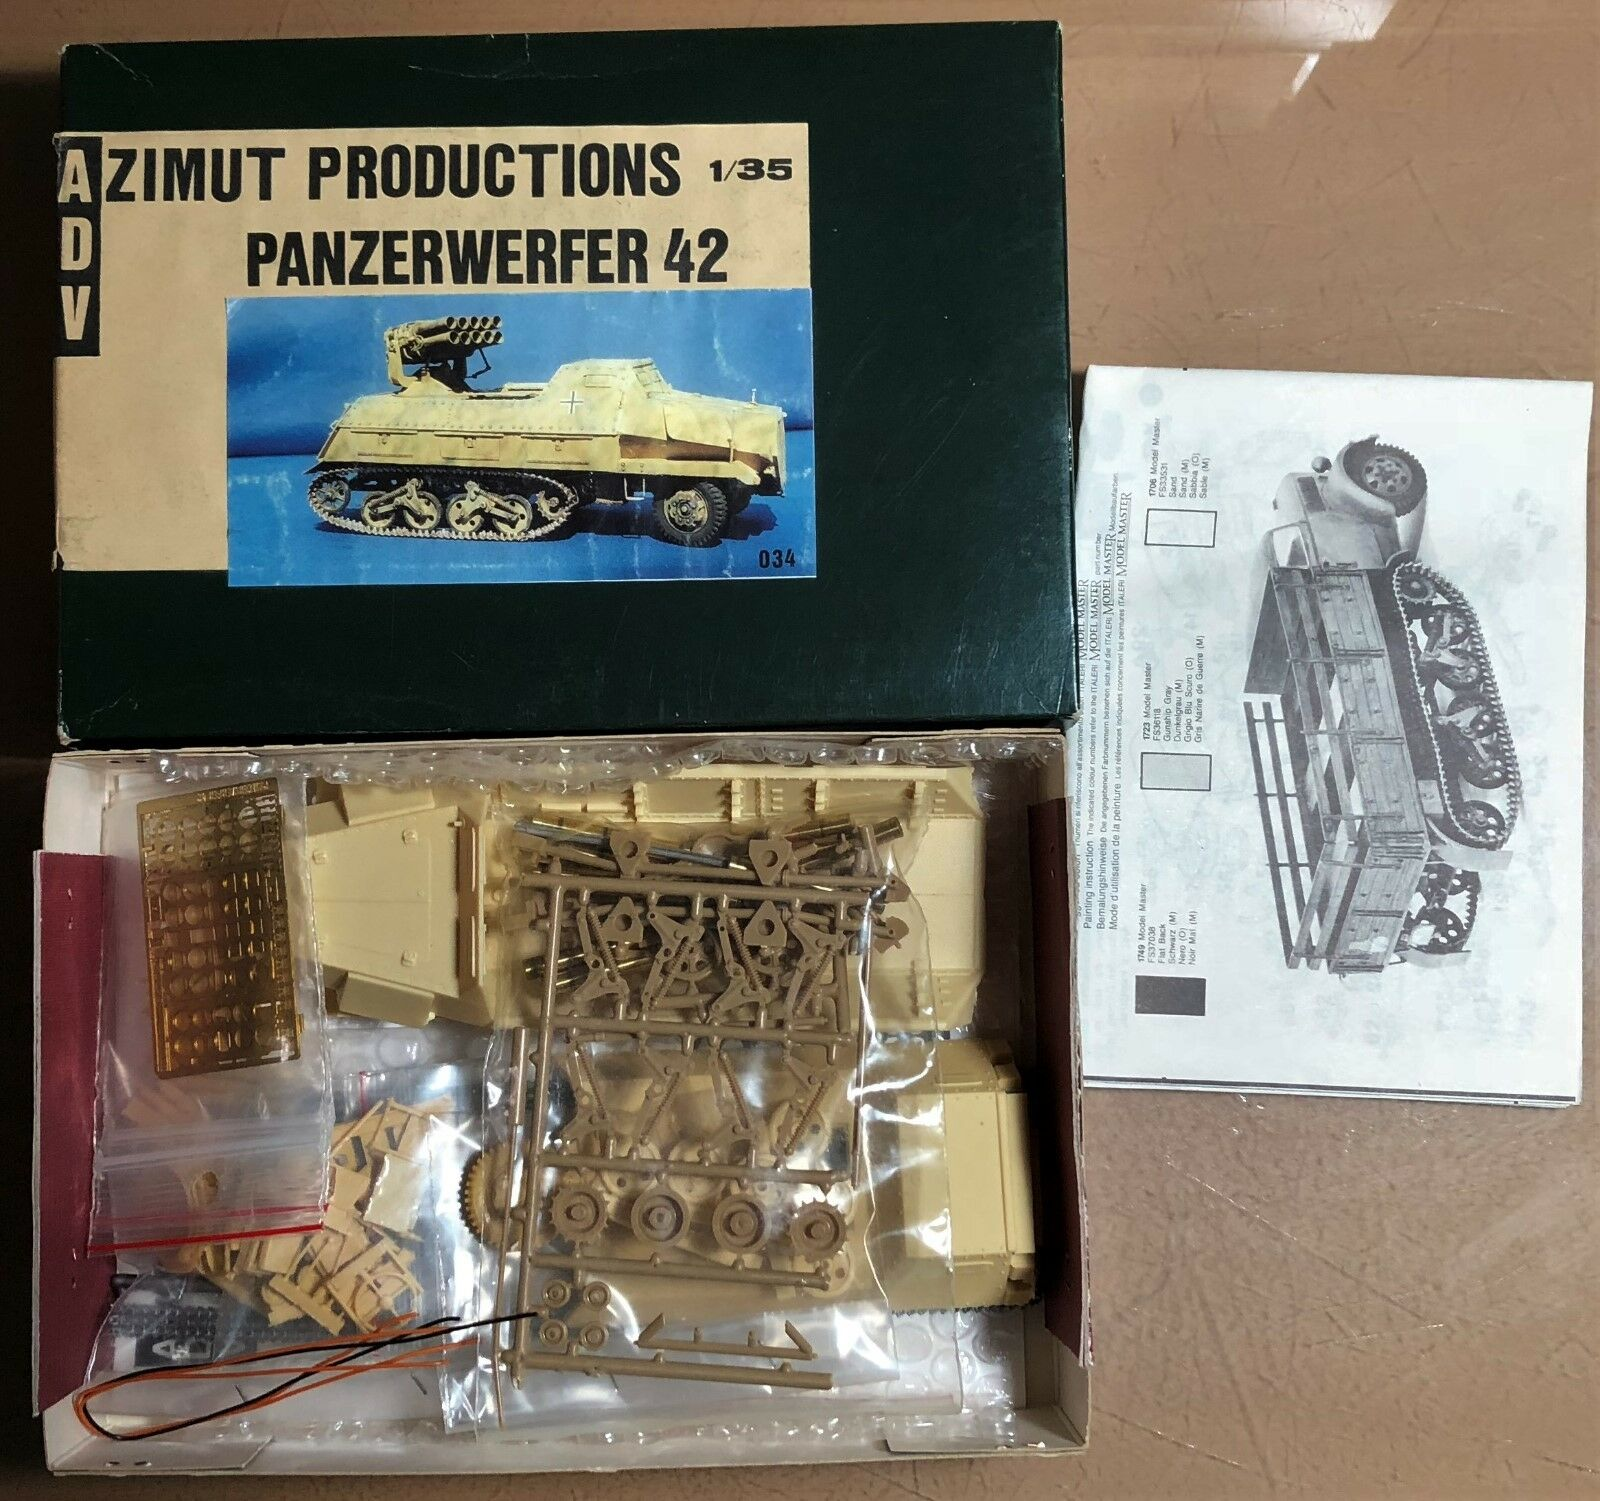 ADV AZIMUT PRODUCTION 35034 - PANZERWERFER 42 - 1 35 RESIN KIT